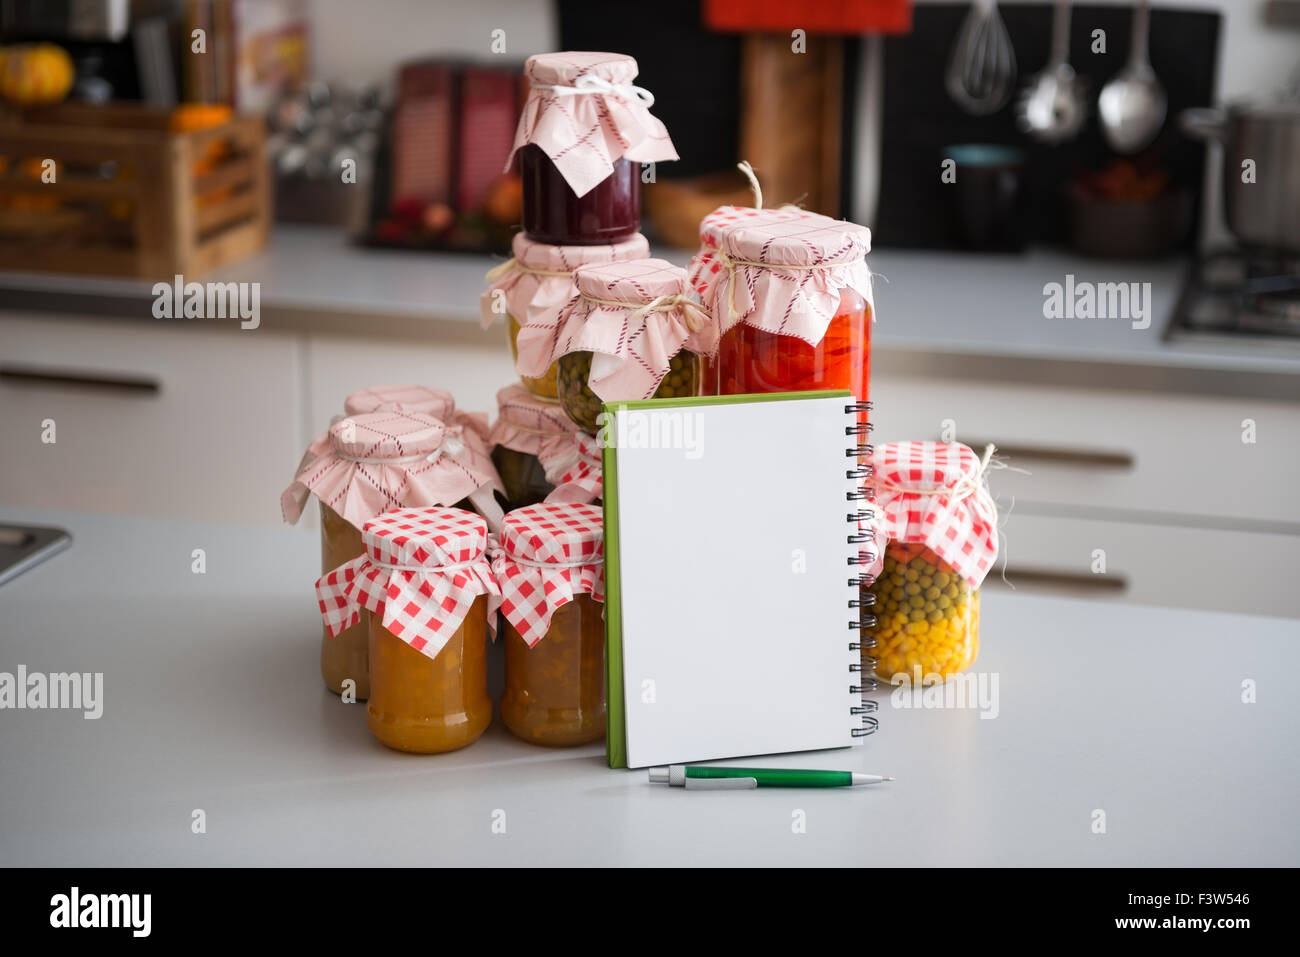 A stack of glass jars filled with preserved vegetables is standing on the kitchen counter. Leaning up against them, - Stock Image